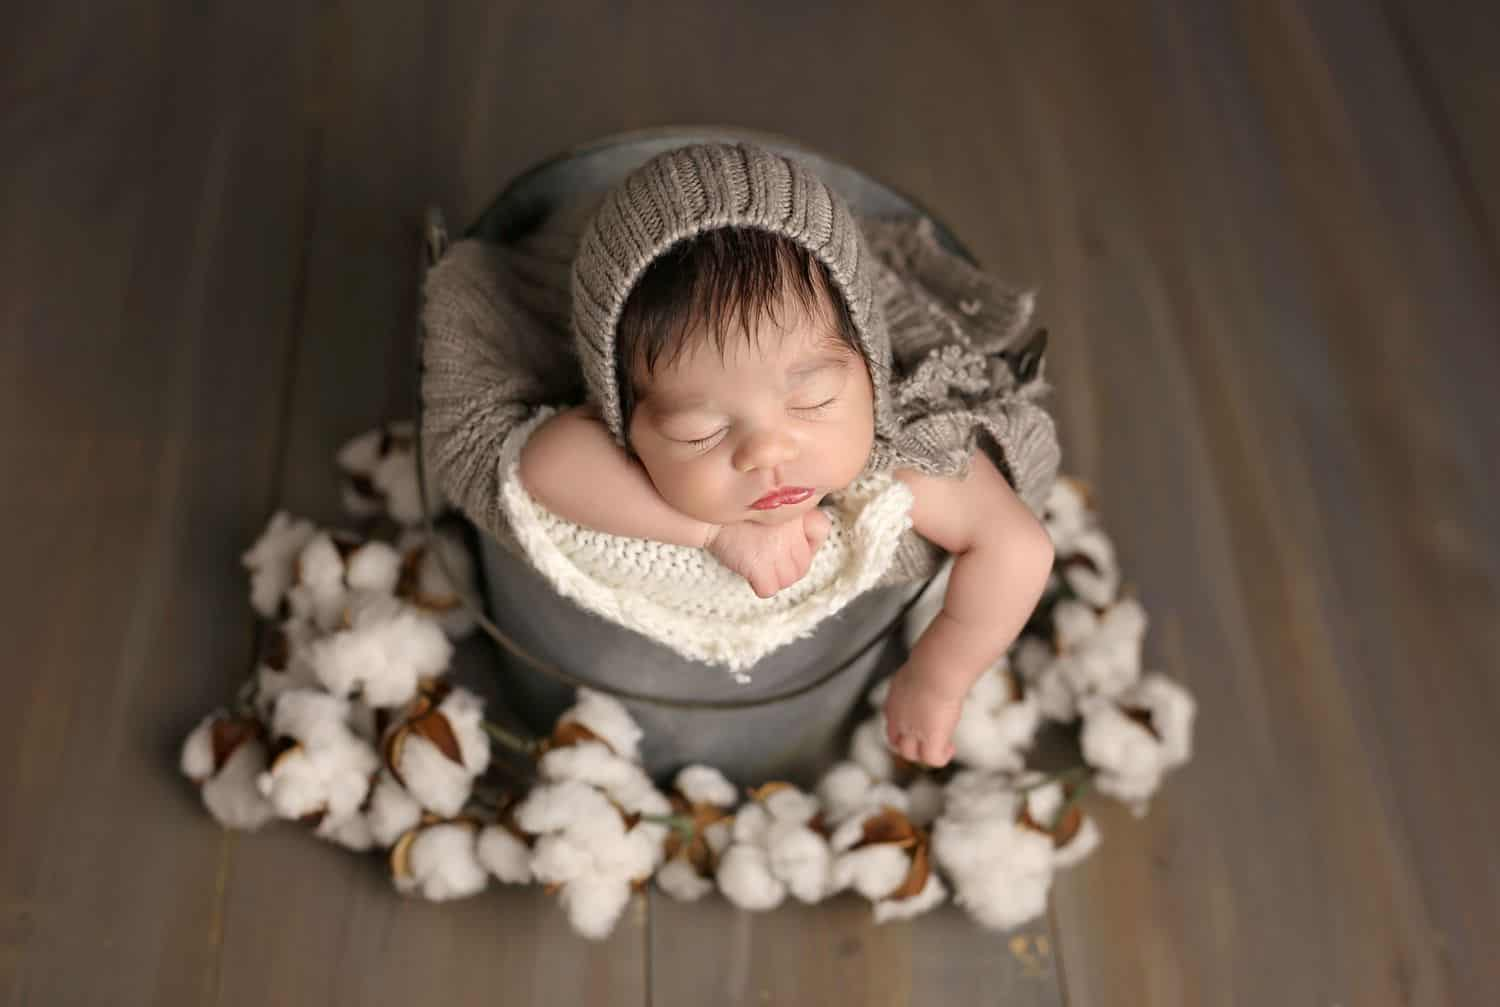 How To Attract New Clients In 3 Bold Business Moves: Baby in a basket by Cassie Clayshulte